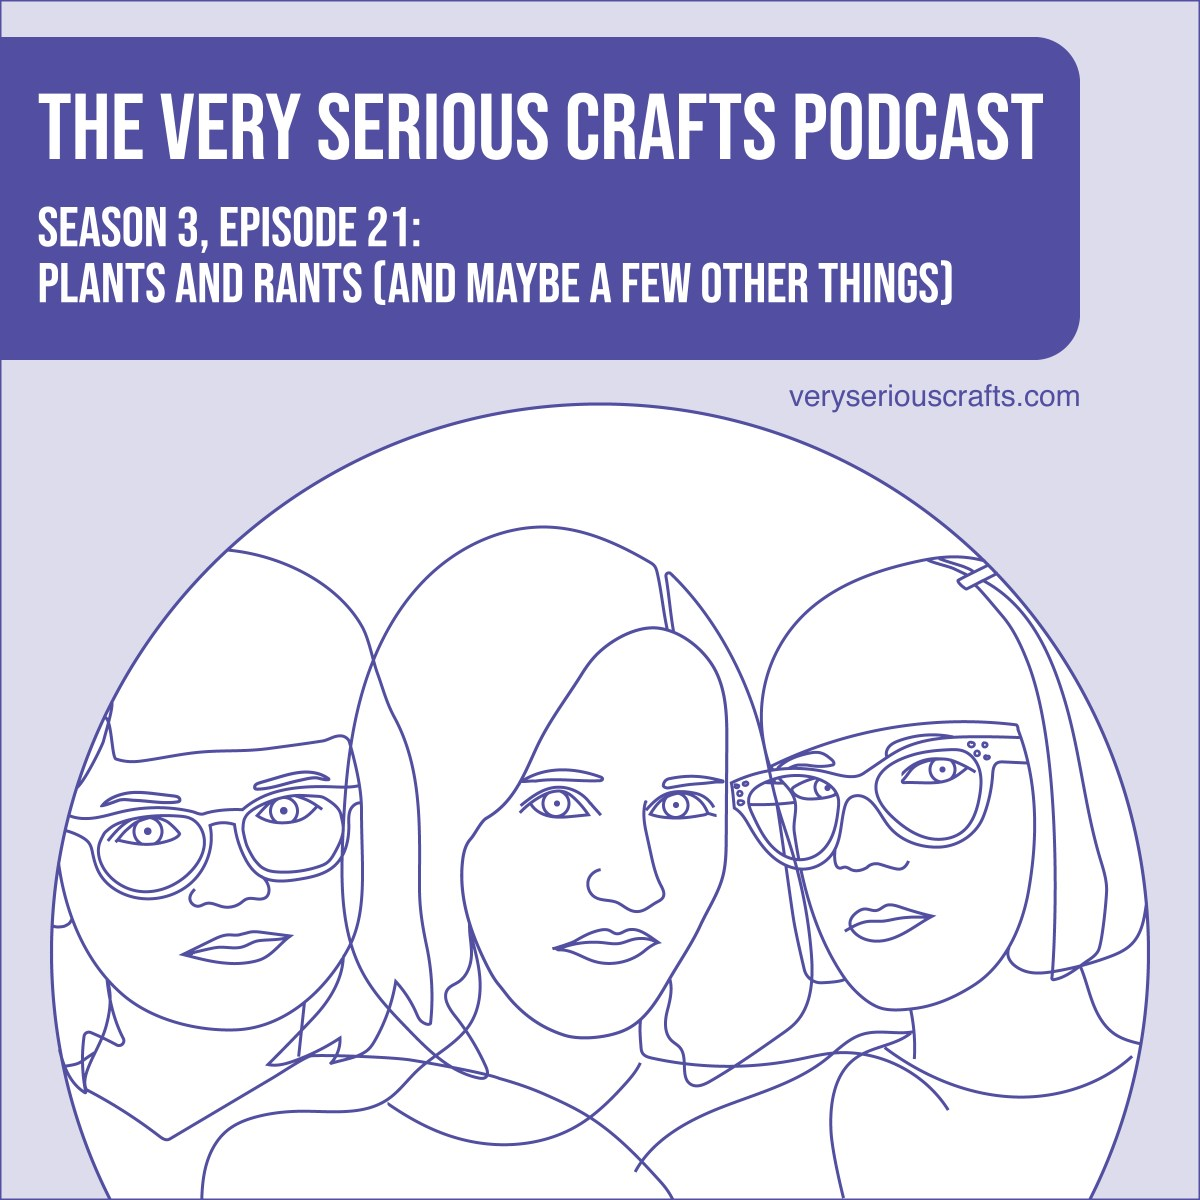 The Very Serious Crafts Podcast, Season 3: Episode 21 – Plants and Rants (and Maybe a Few Other Things)